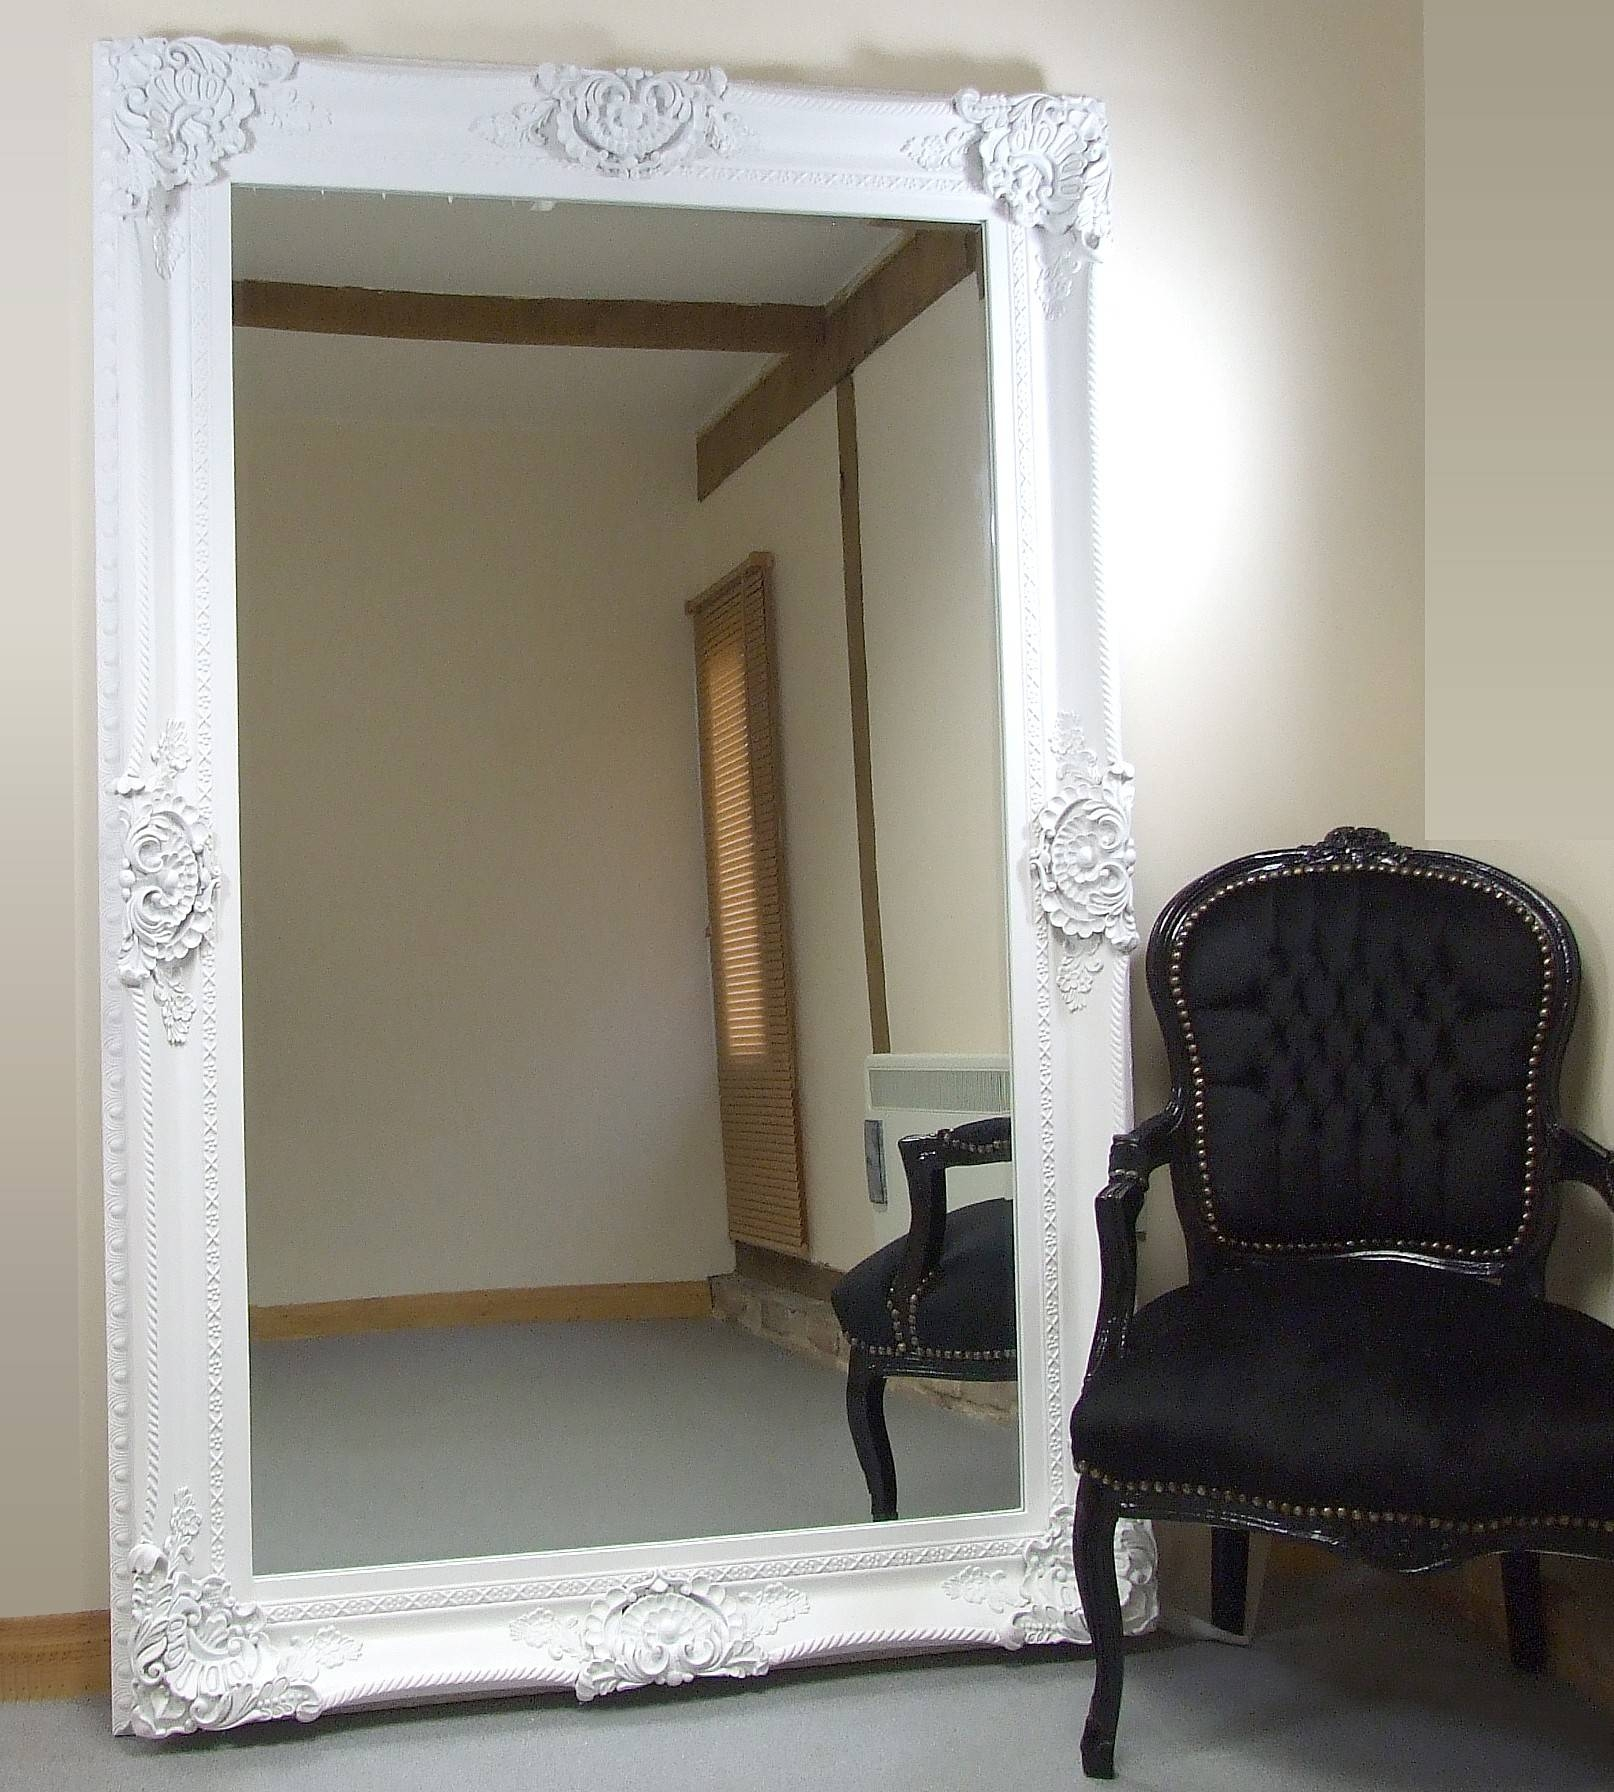 Seville Ornate Extra-Large French Full Length Wall Leaner Mirror intended for Large White Ornate Mirrors (Image 20 of 25)